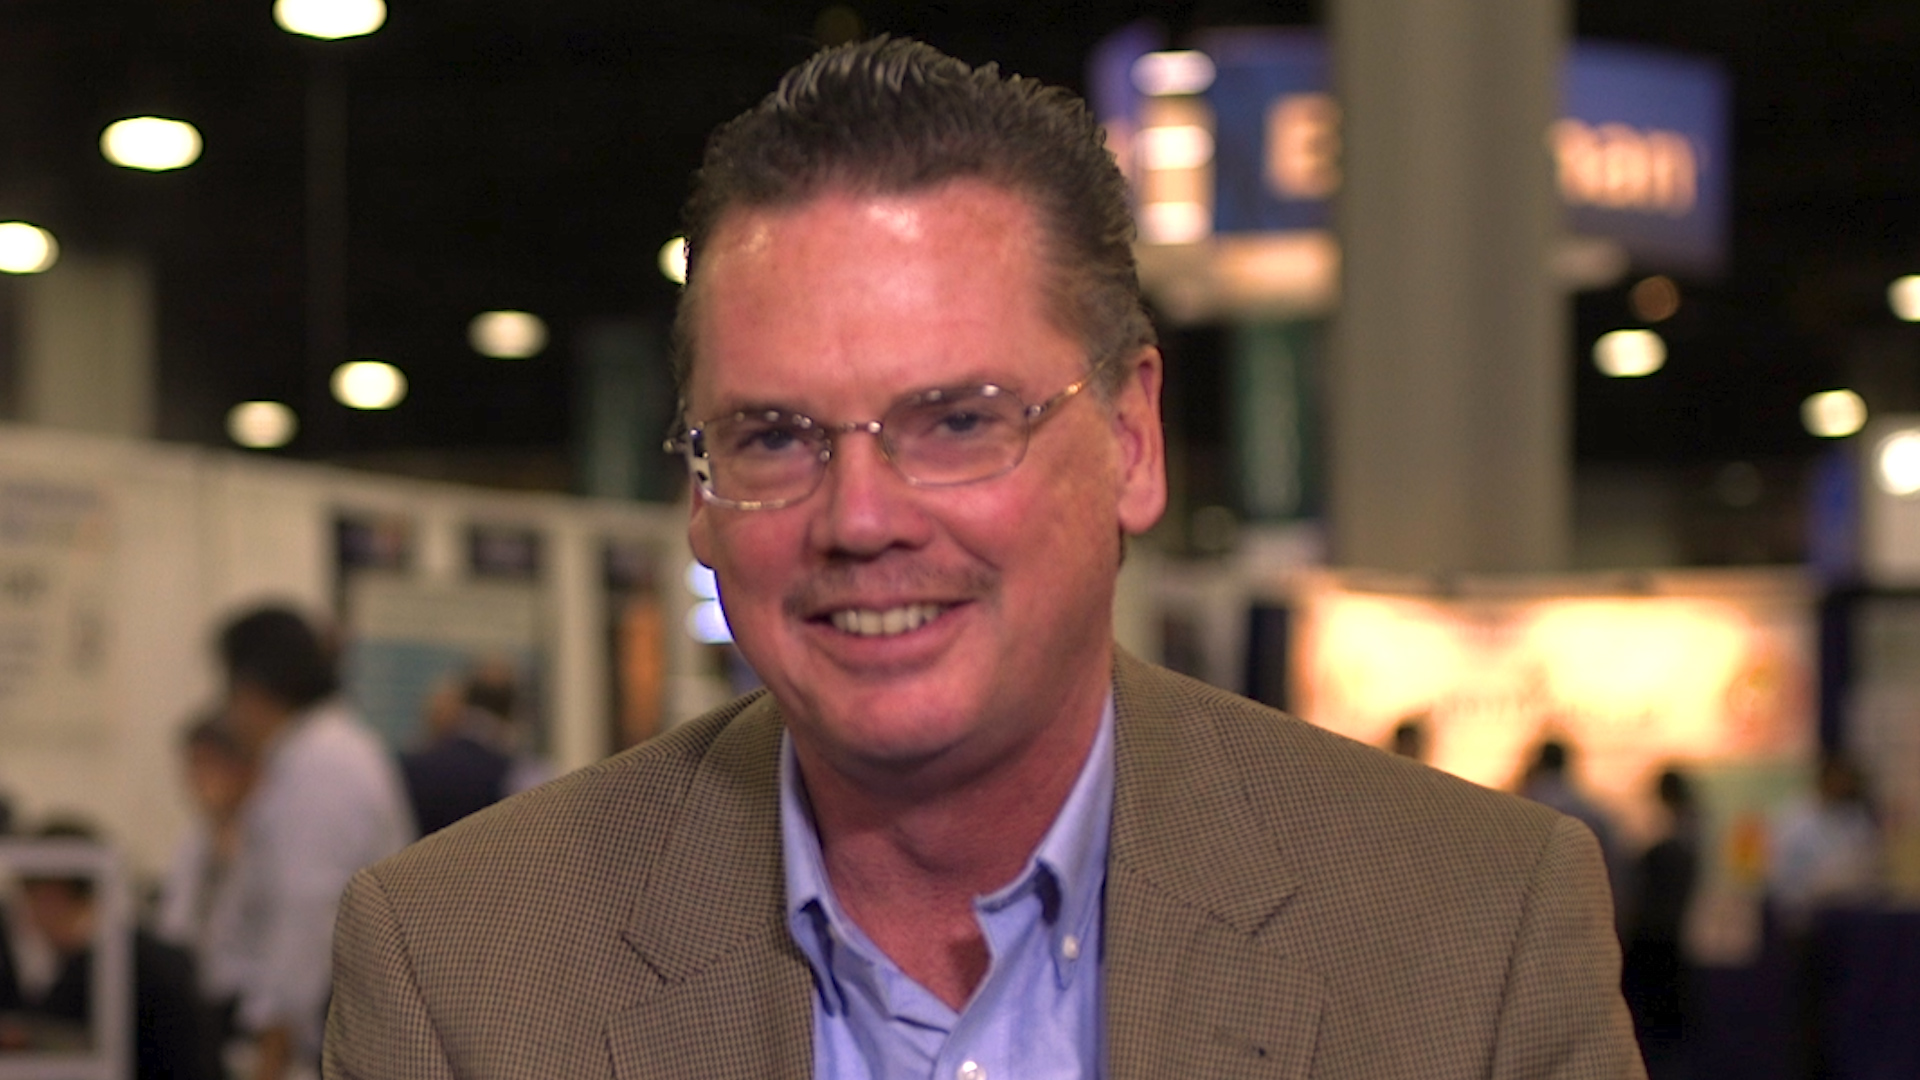 Scott Schinlever Continues Analog-to-Digital Transformation at Gerber Technology